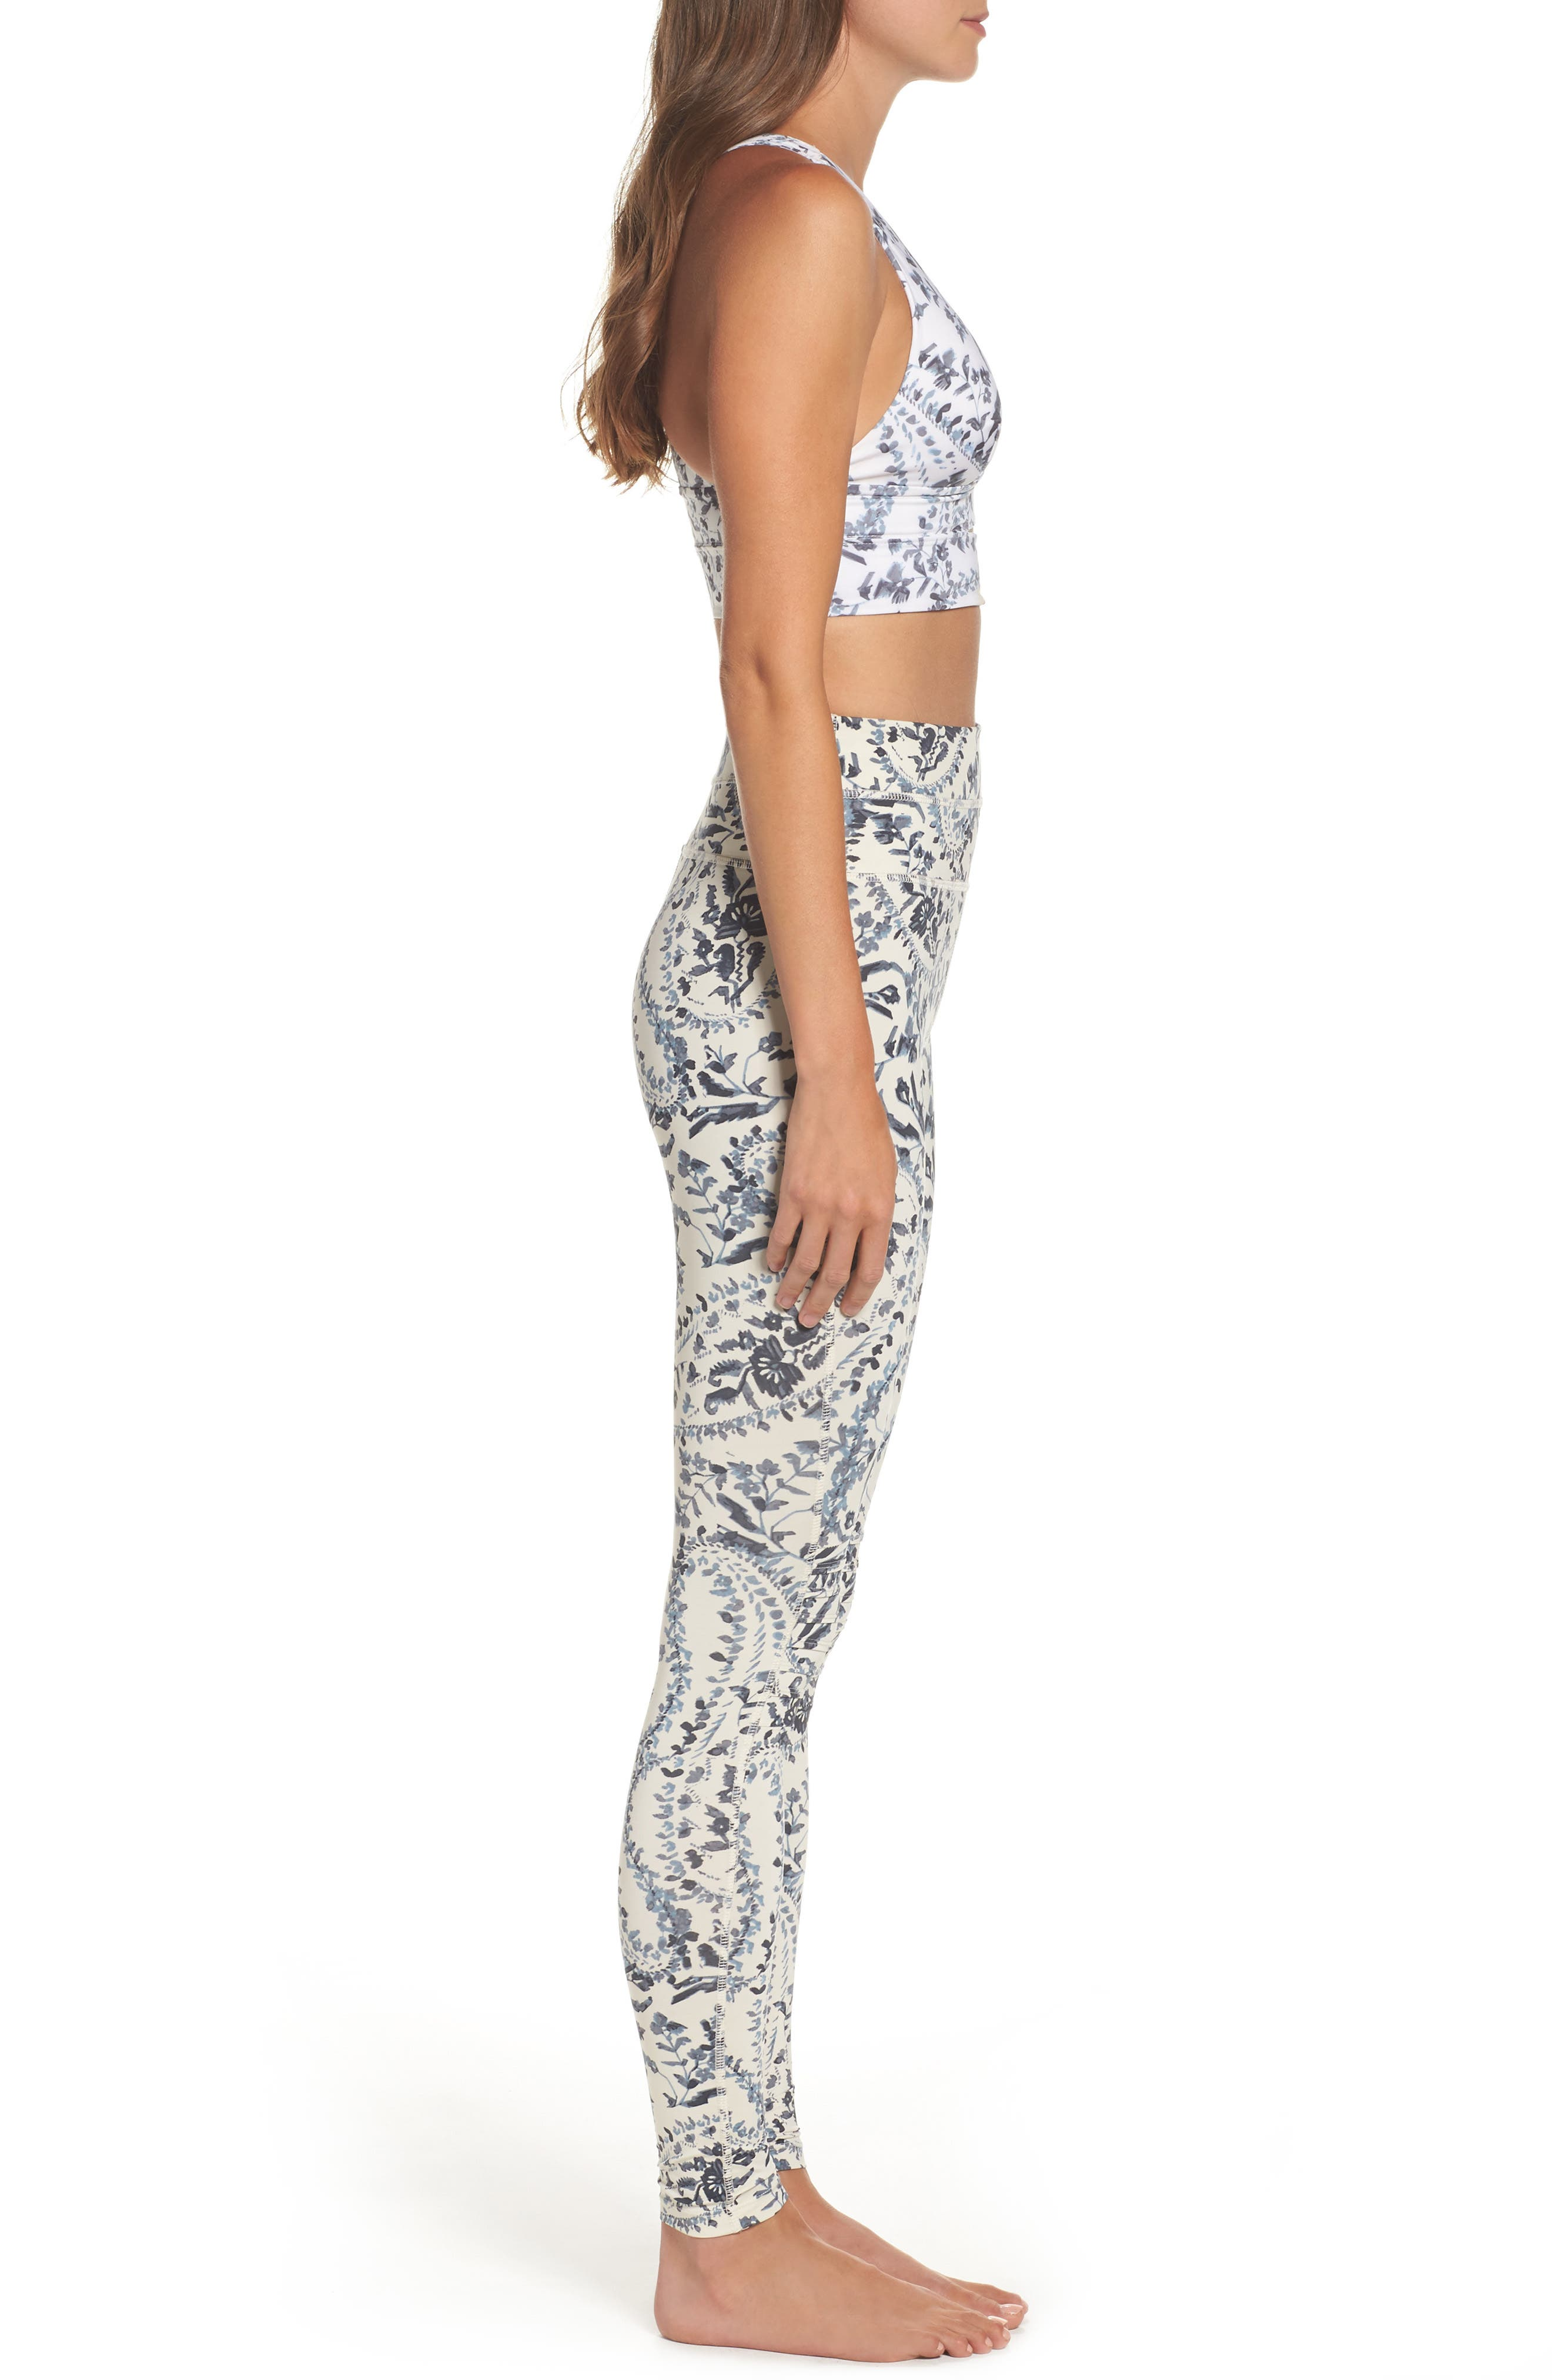 FP Movement Print City Slicker High Waist Leggings,                             Alternate thumbnail 10, color,                             400